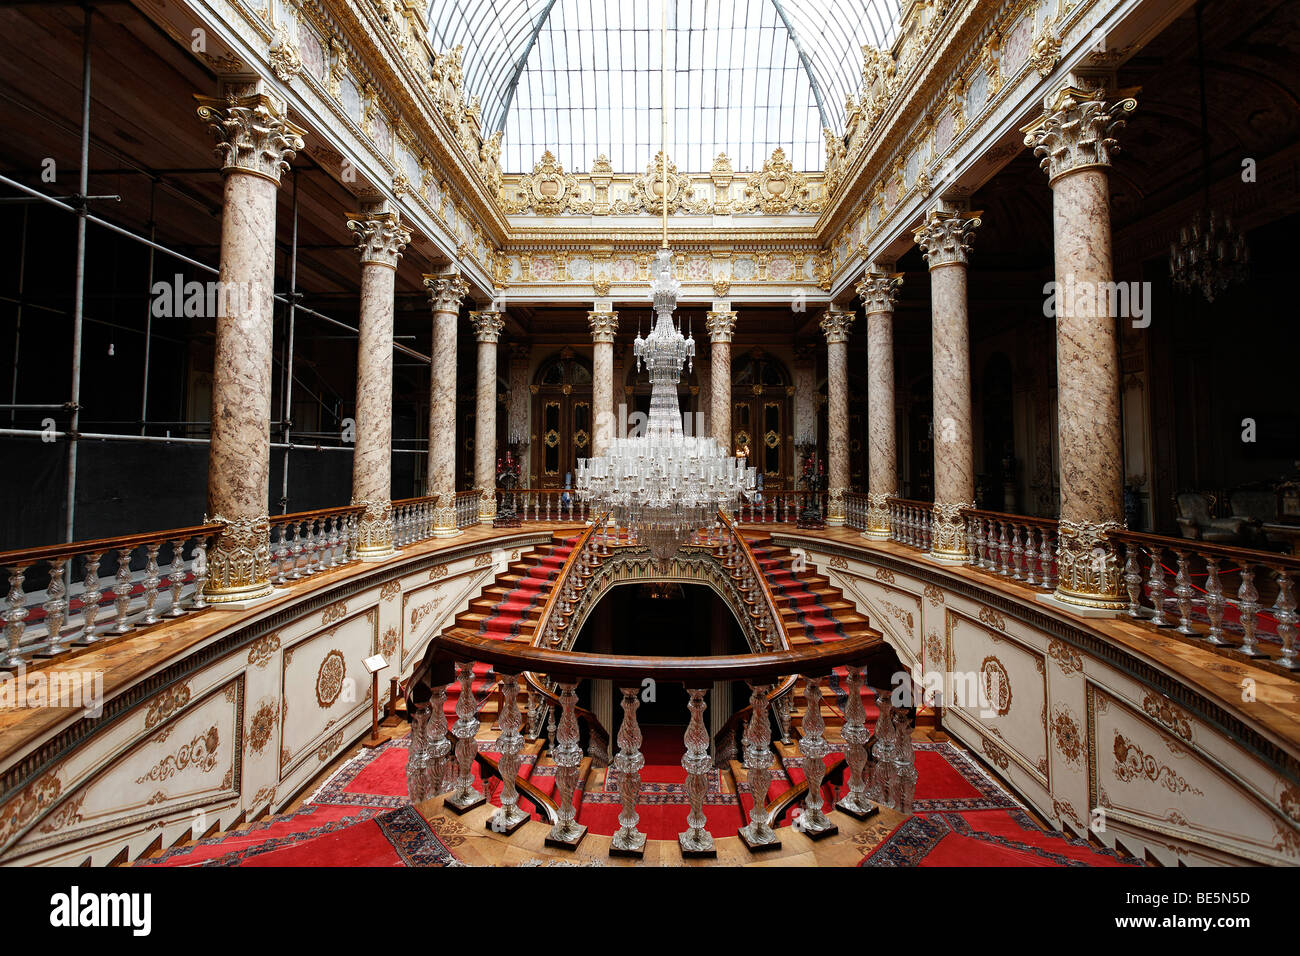 Staircase with dome, crystal staircase, glass staircase